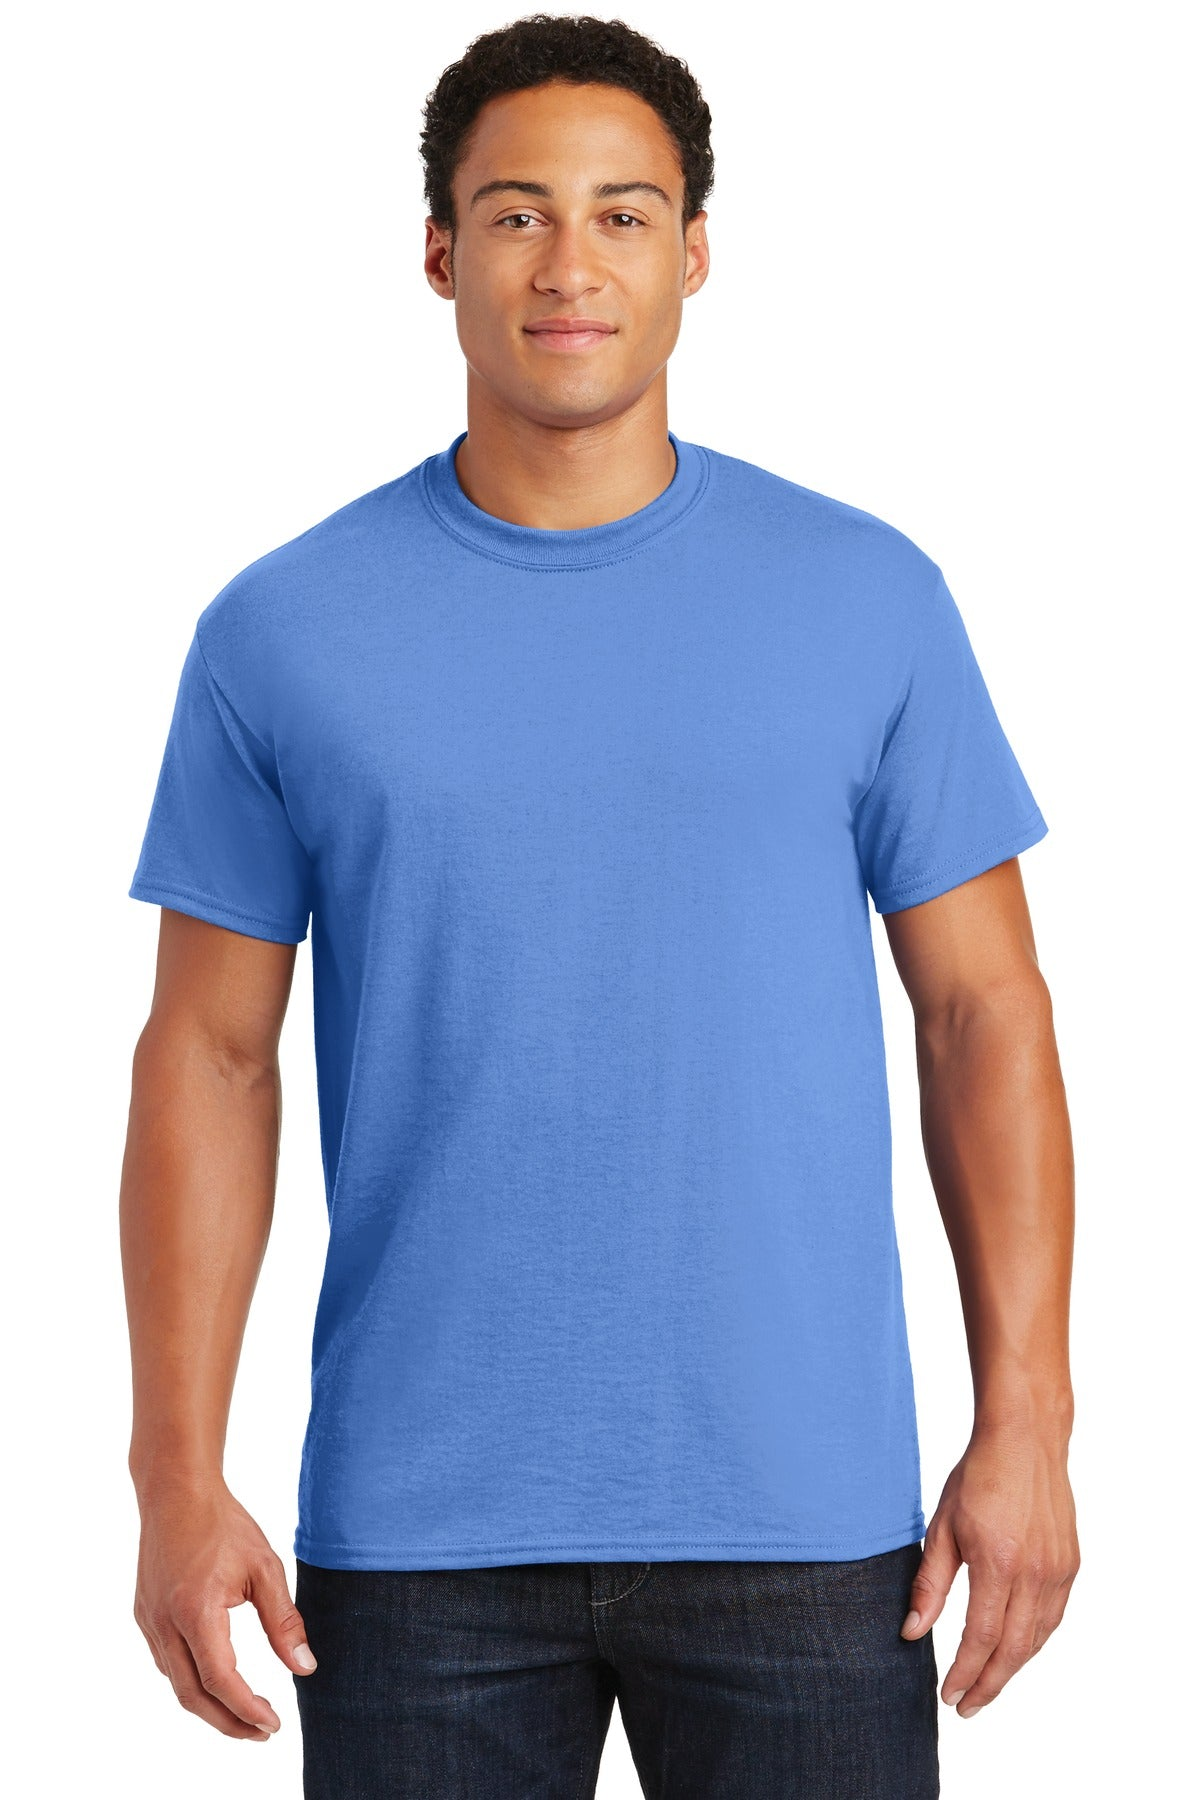 Carolina Blue Gildan DryBlend 50 Cotton/50 Poly T-Shirt.